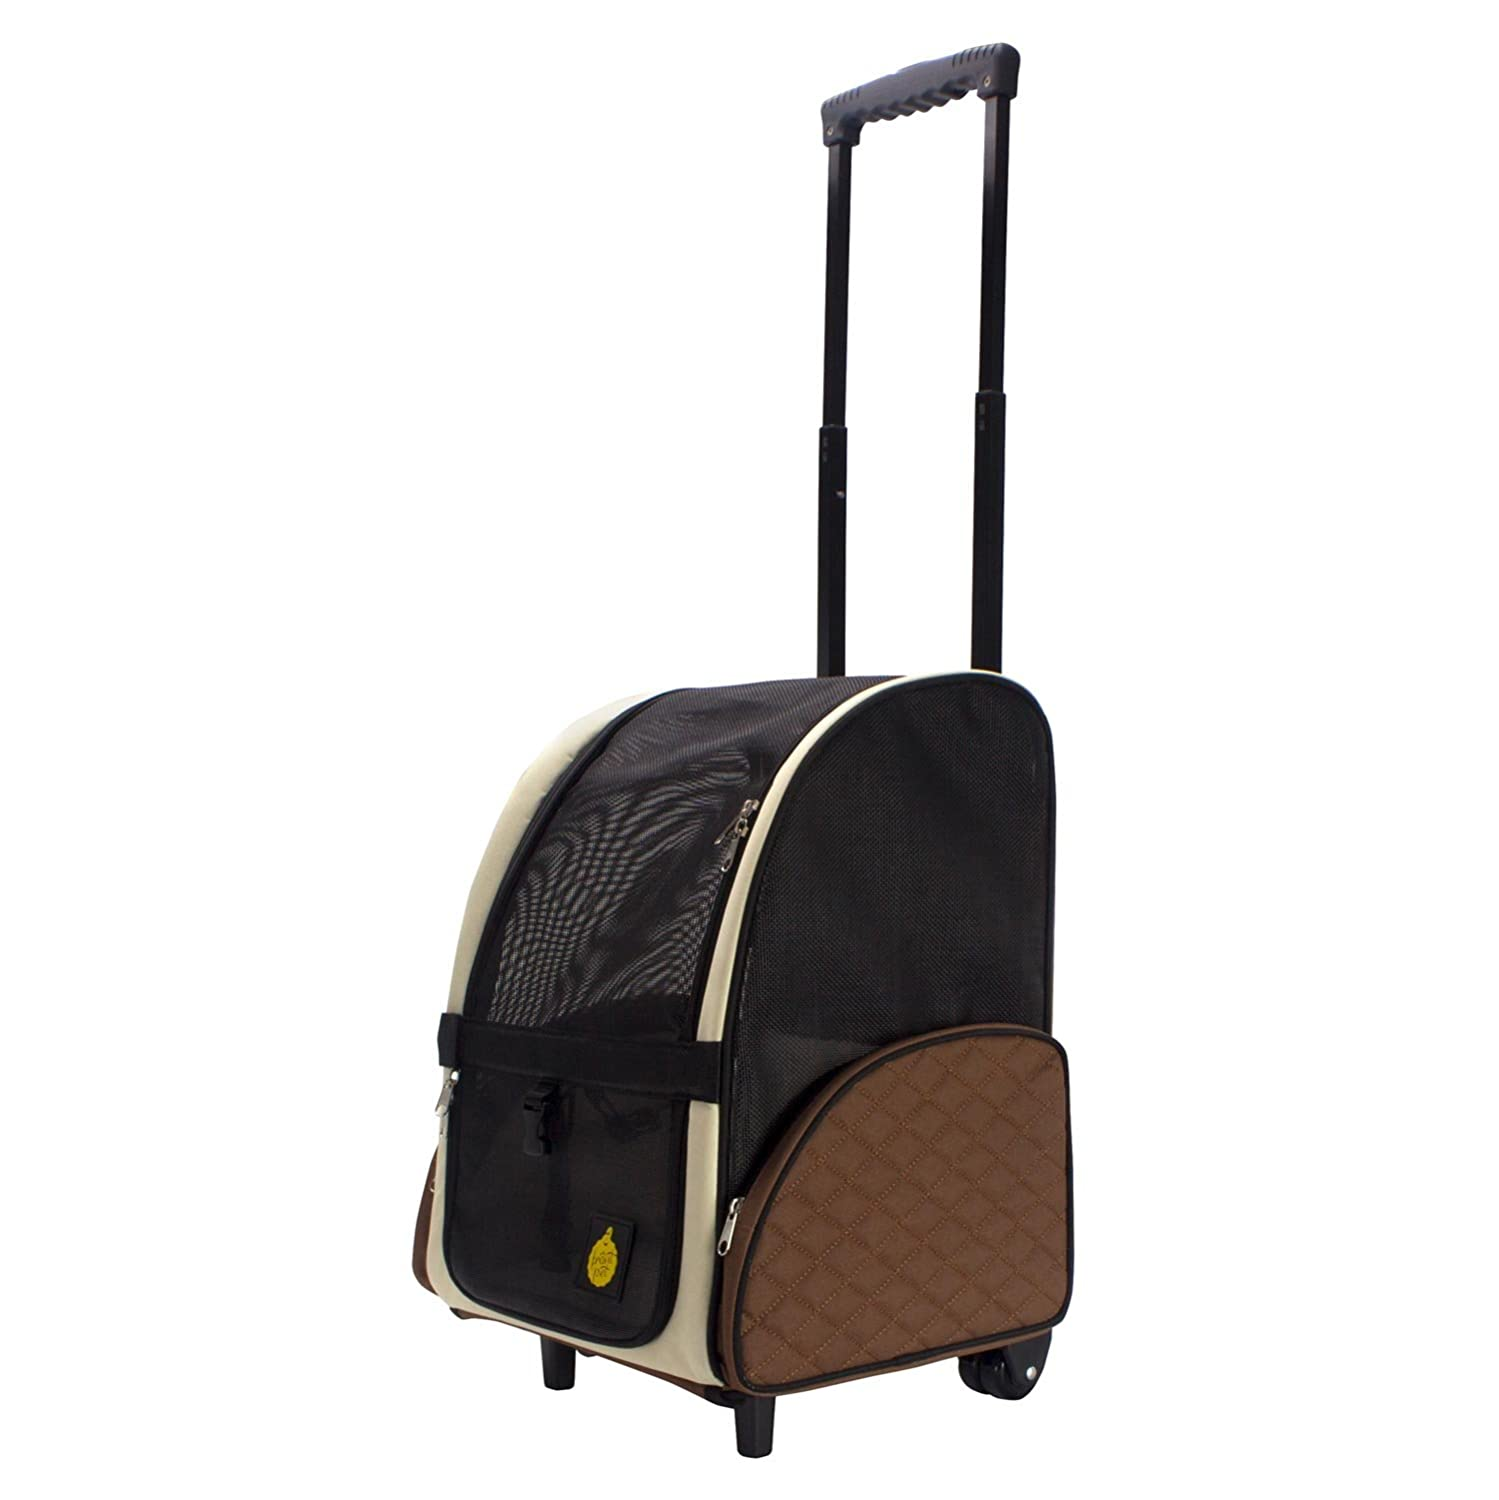 "Front Pet Rolling Pet Travel Carrier/Pet Carrier With Wheels/With Backpack Straps (12"" W X 14.5"" L X 19.5"" H)/Air Travel Pet Carrier/Airport Pet Carrier/Travel Pet Carrier/Pet Carrier by Front Pet"